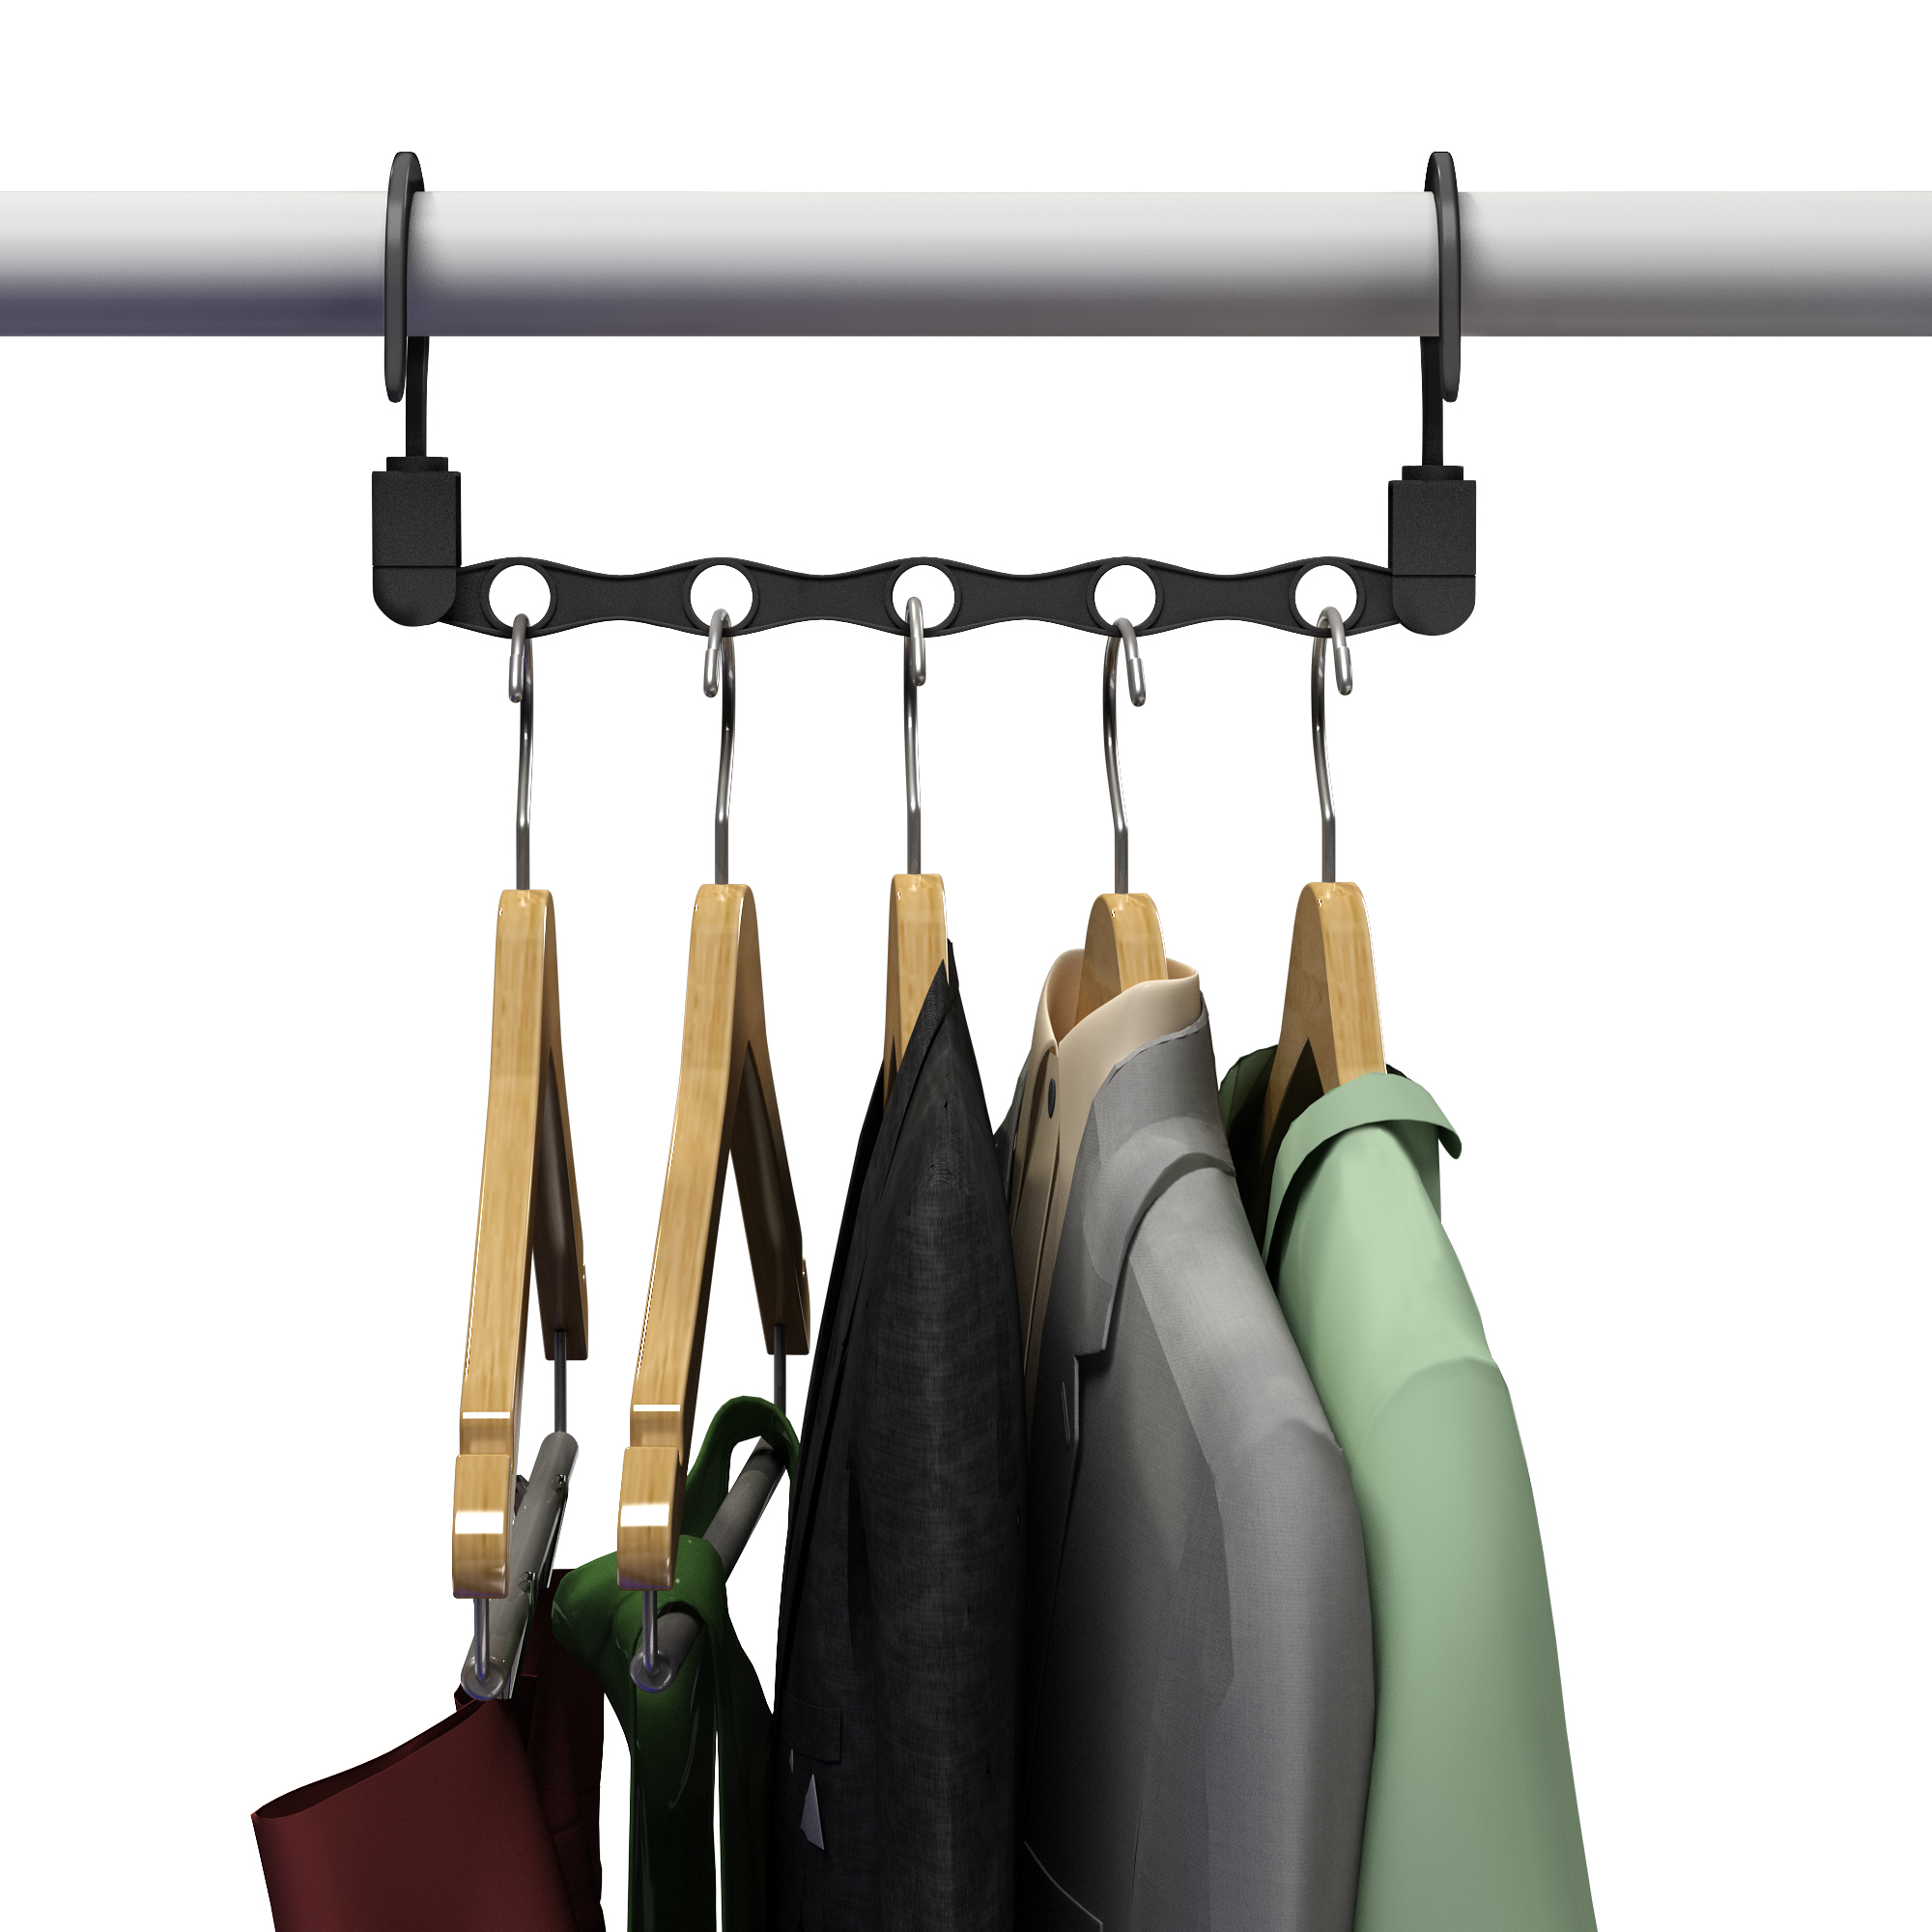 Space Saving Closet Organization Vertical And Horizontal Multi Hanger For  Shirts, Pants, And Coats